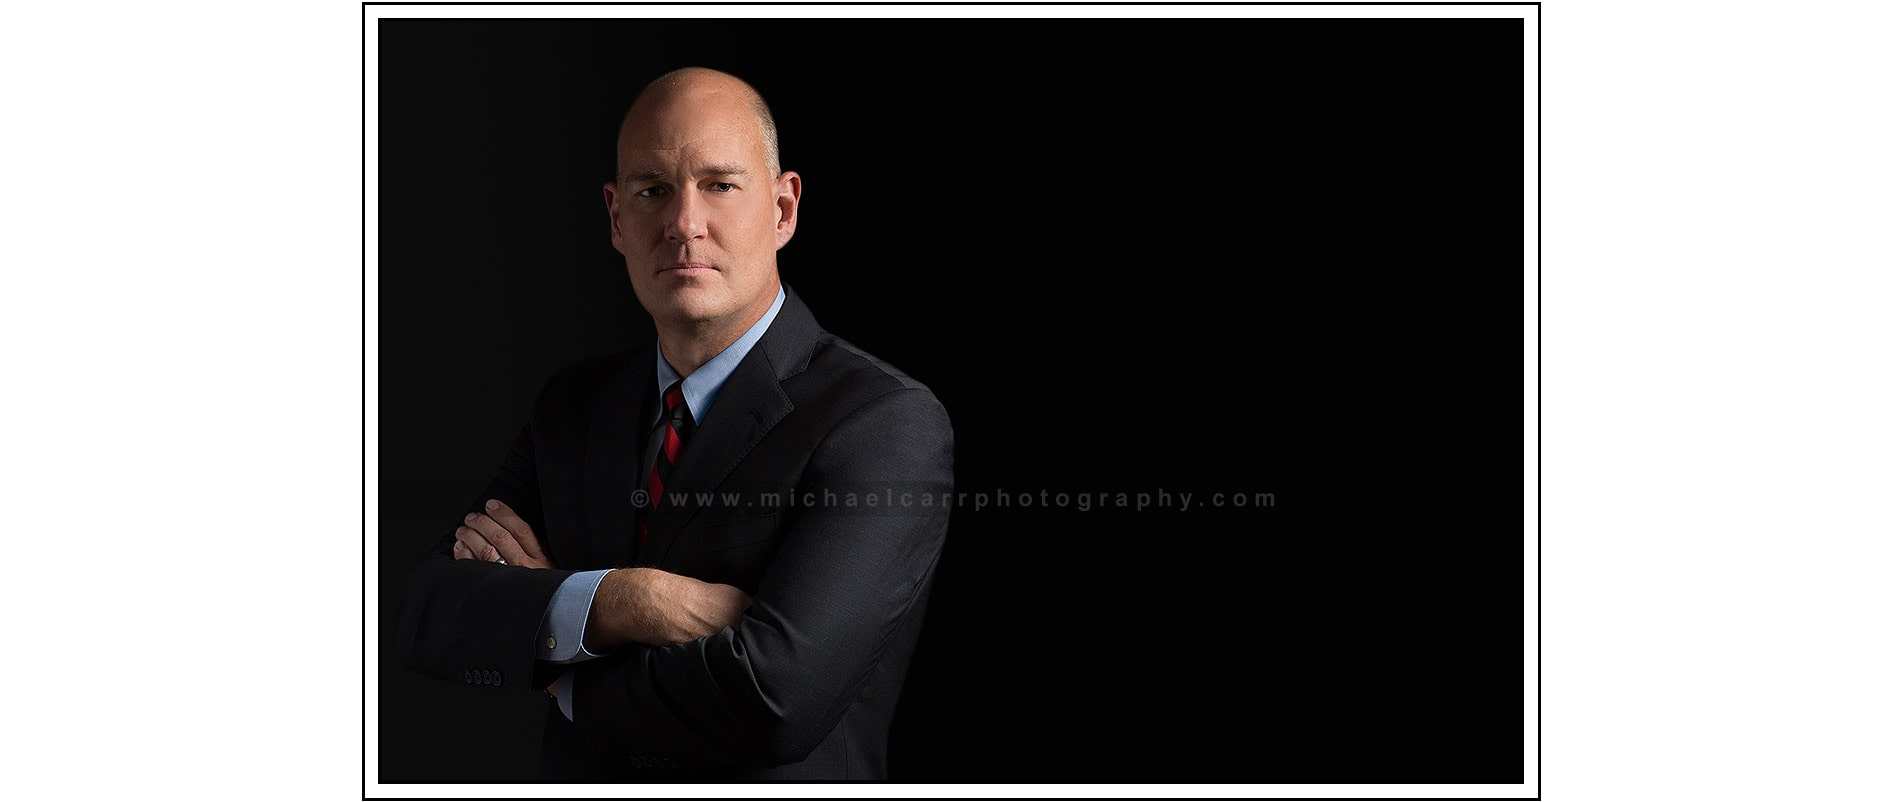 Modern business portraits